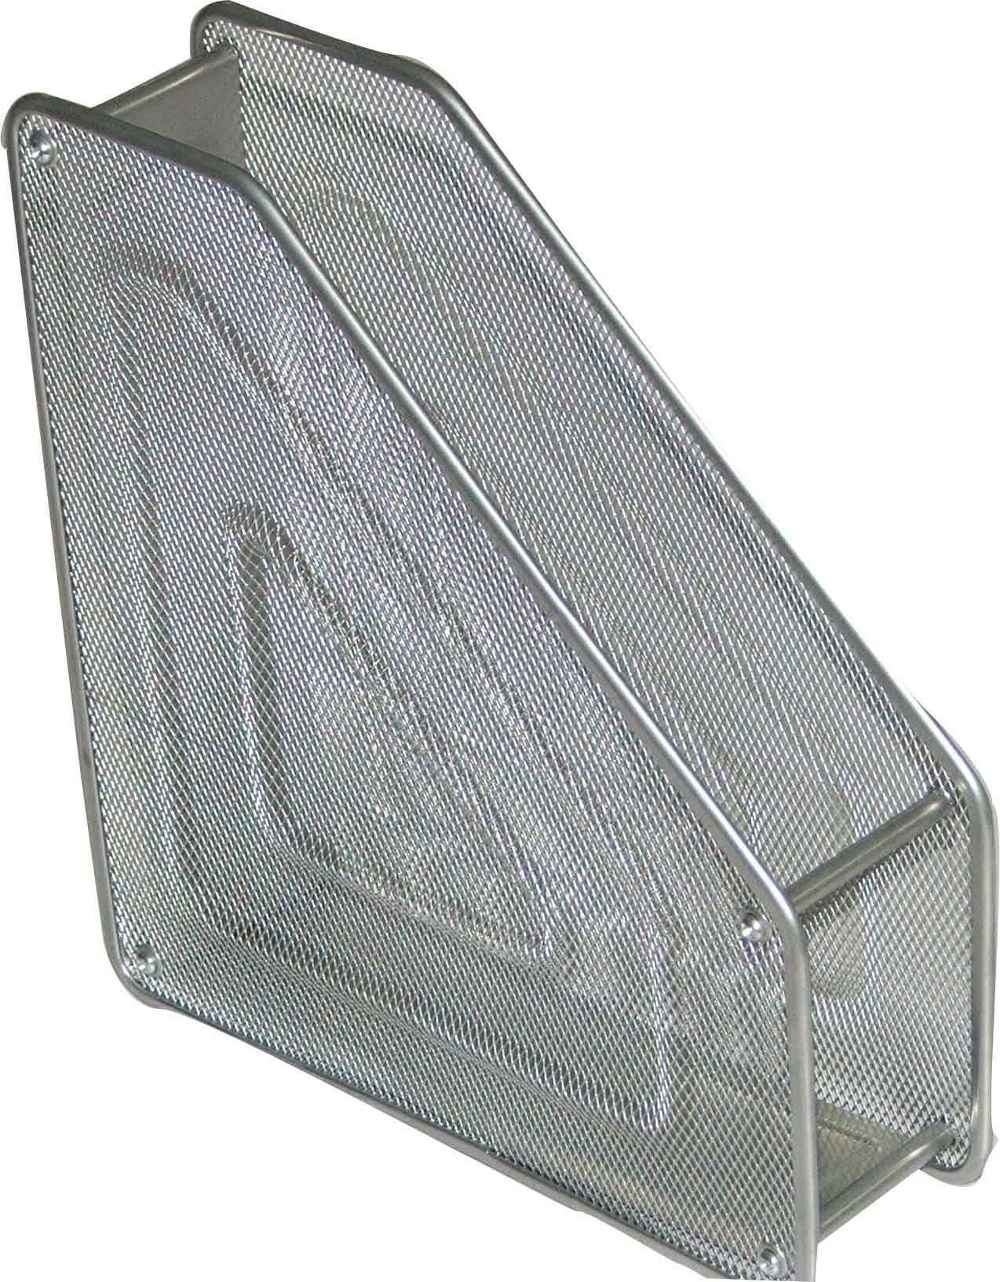 "Metal Mesh <em>File Magazine Holder Ideas</em>"" width=""337″ height=""433″ /><p class="